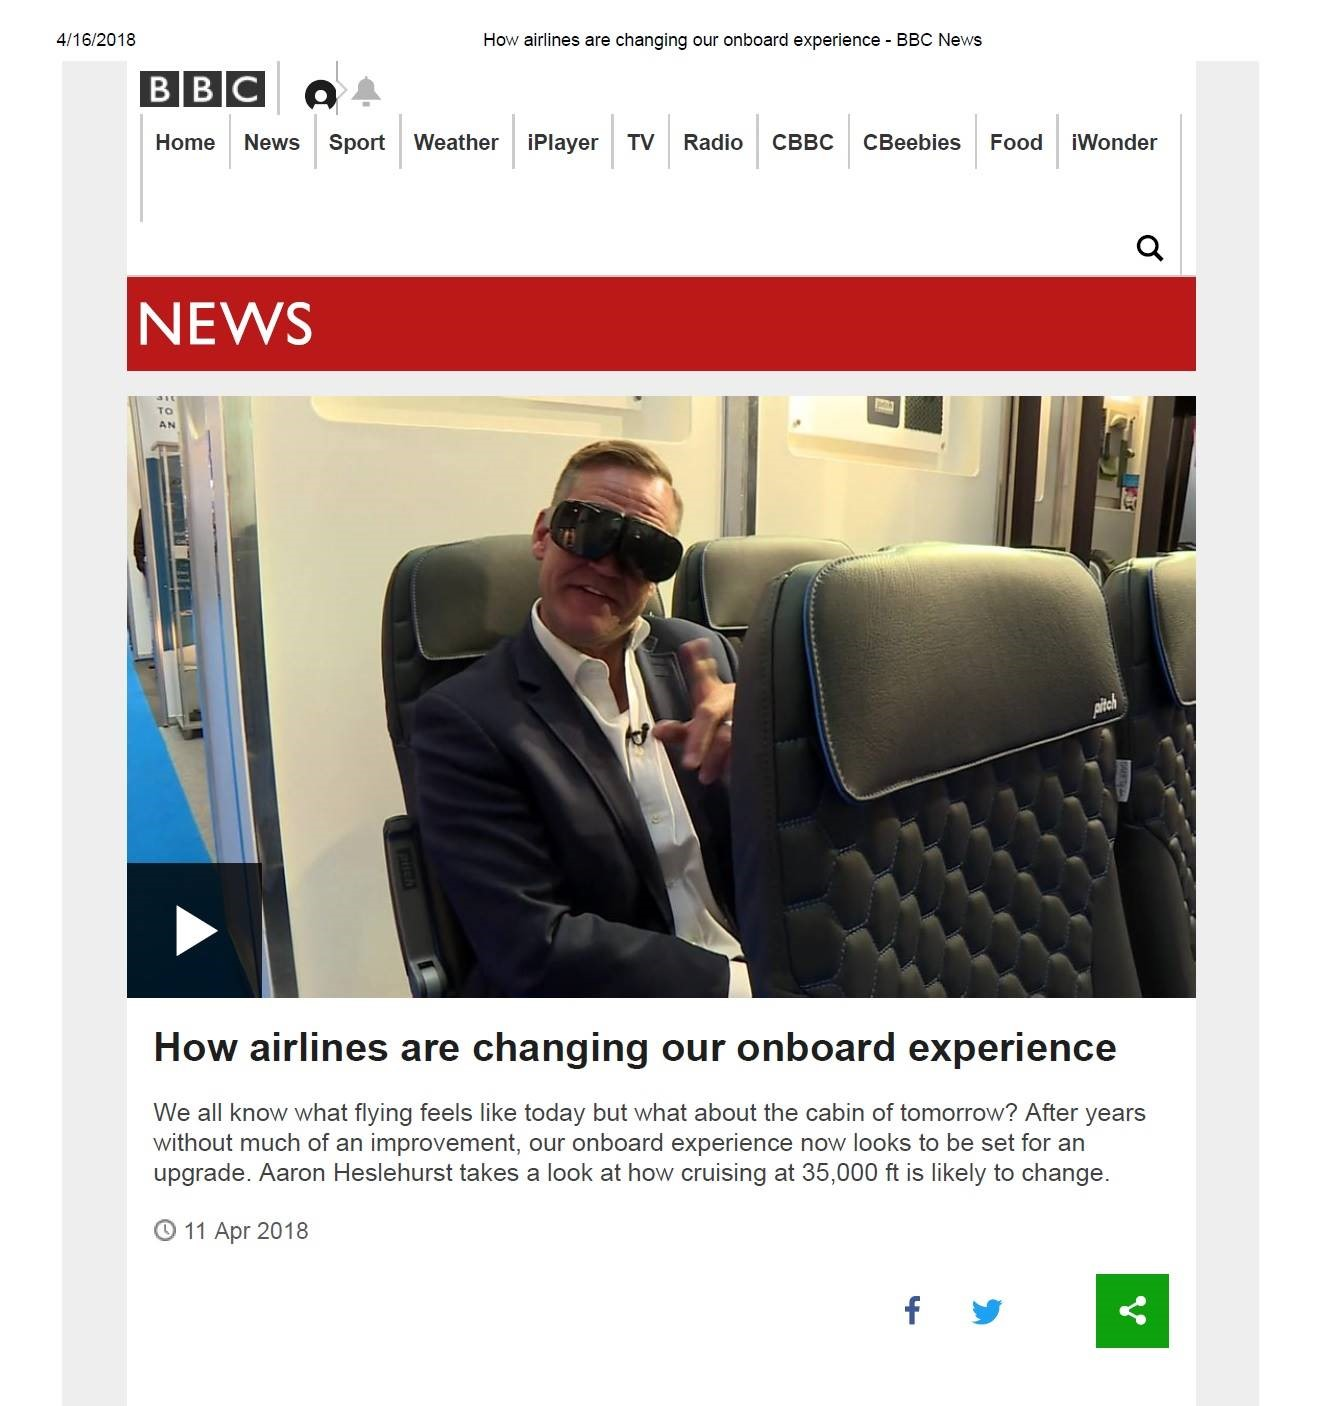 """Aaron dropped by the PITCH stand in Hamburg as part of his tour in the """"virtual world"""" of aircraft travel. PITCH has been at the forefront of this rapidly evolving technology presenting full cabin interiors to customers before they take delivery of our seats."""